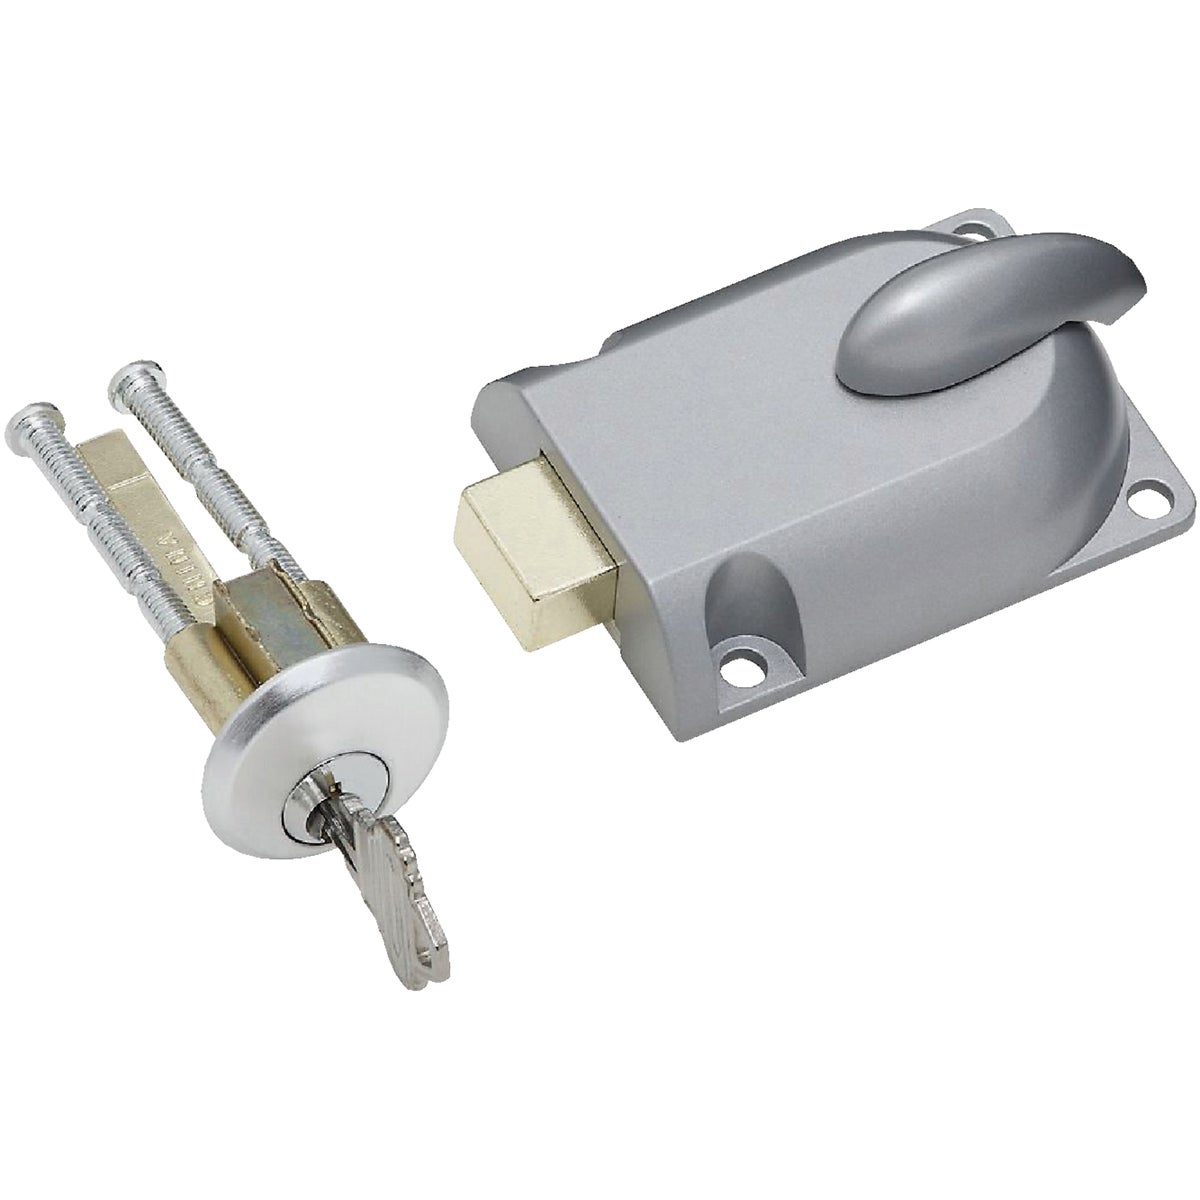 National Mfg. DEAD BOLT LOCK N280784